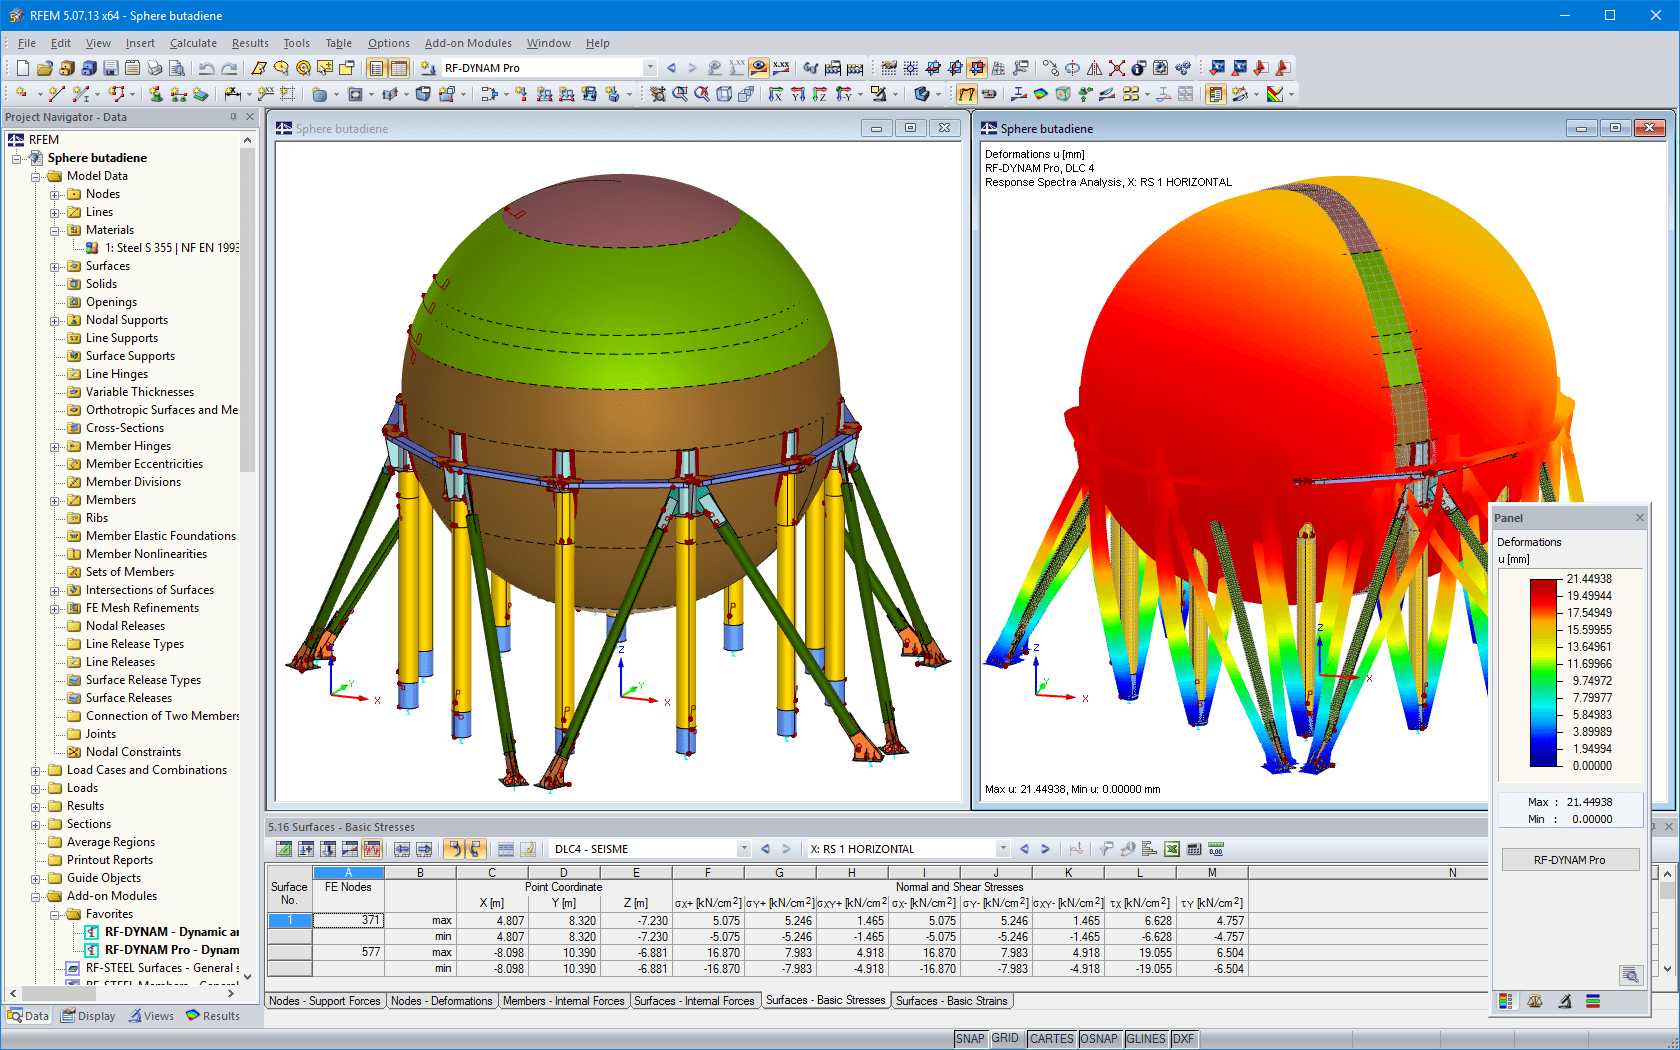 3D model of the butadiene storage sphere in RFEM (left) and the mode shape from RF-DYNAM Pro (right)